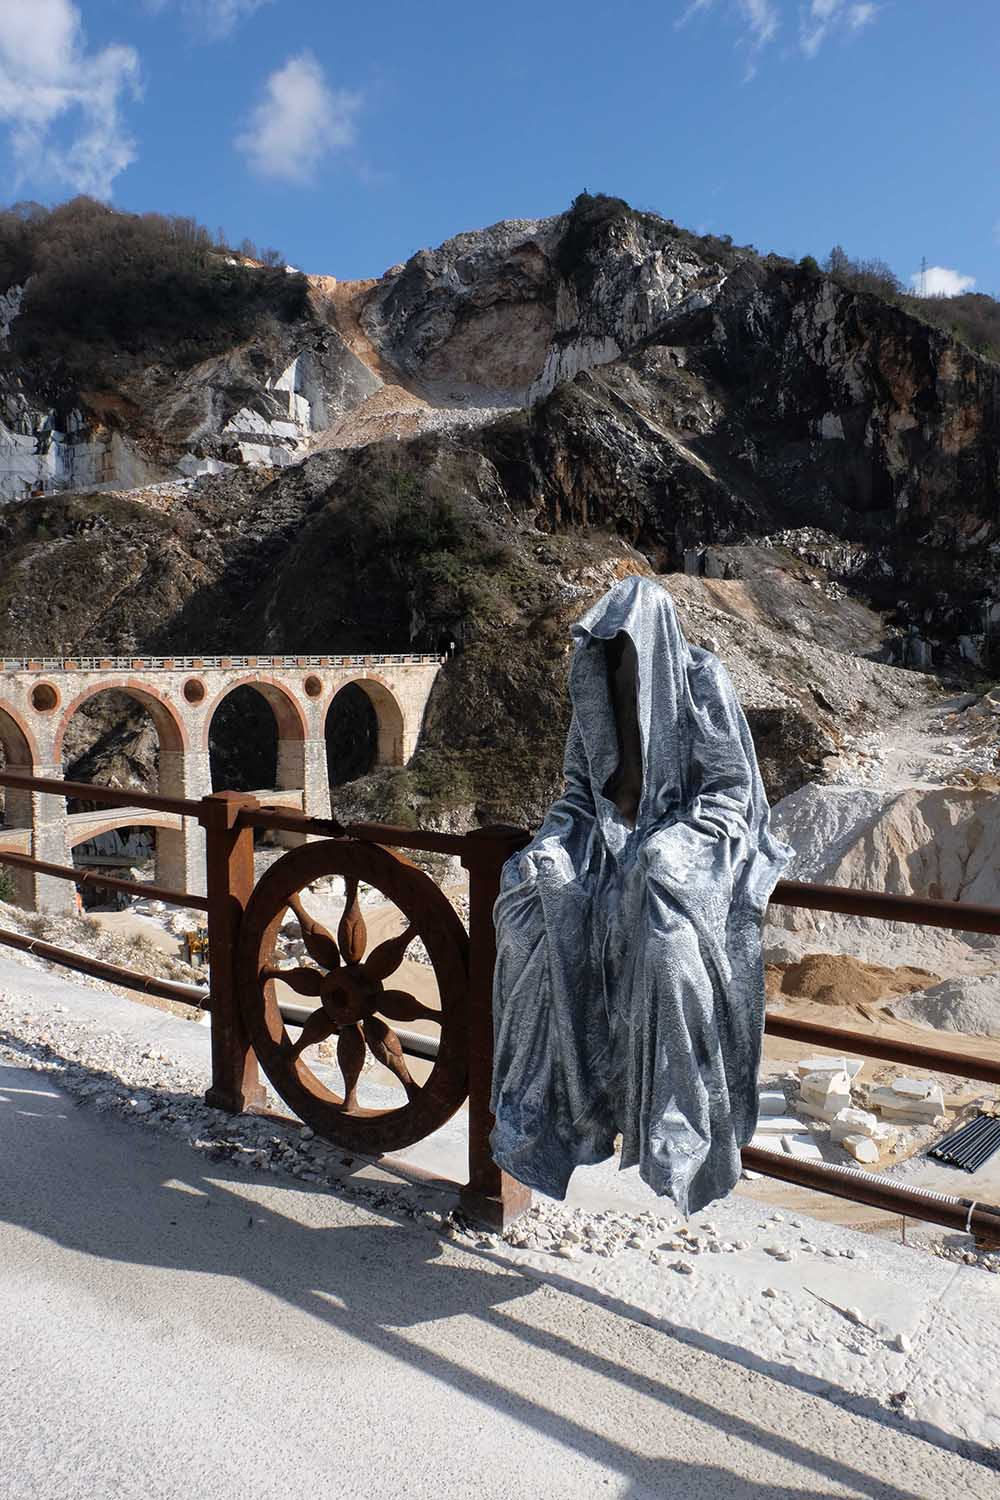 guardians of time manfred kili kielnhofer modern sculpture contemporary fine art design arts statue faceless religion stone marble carrara 1252